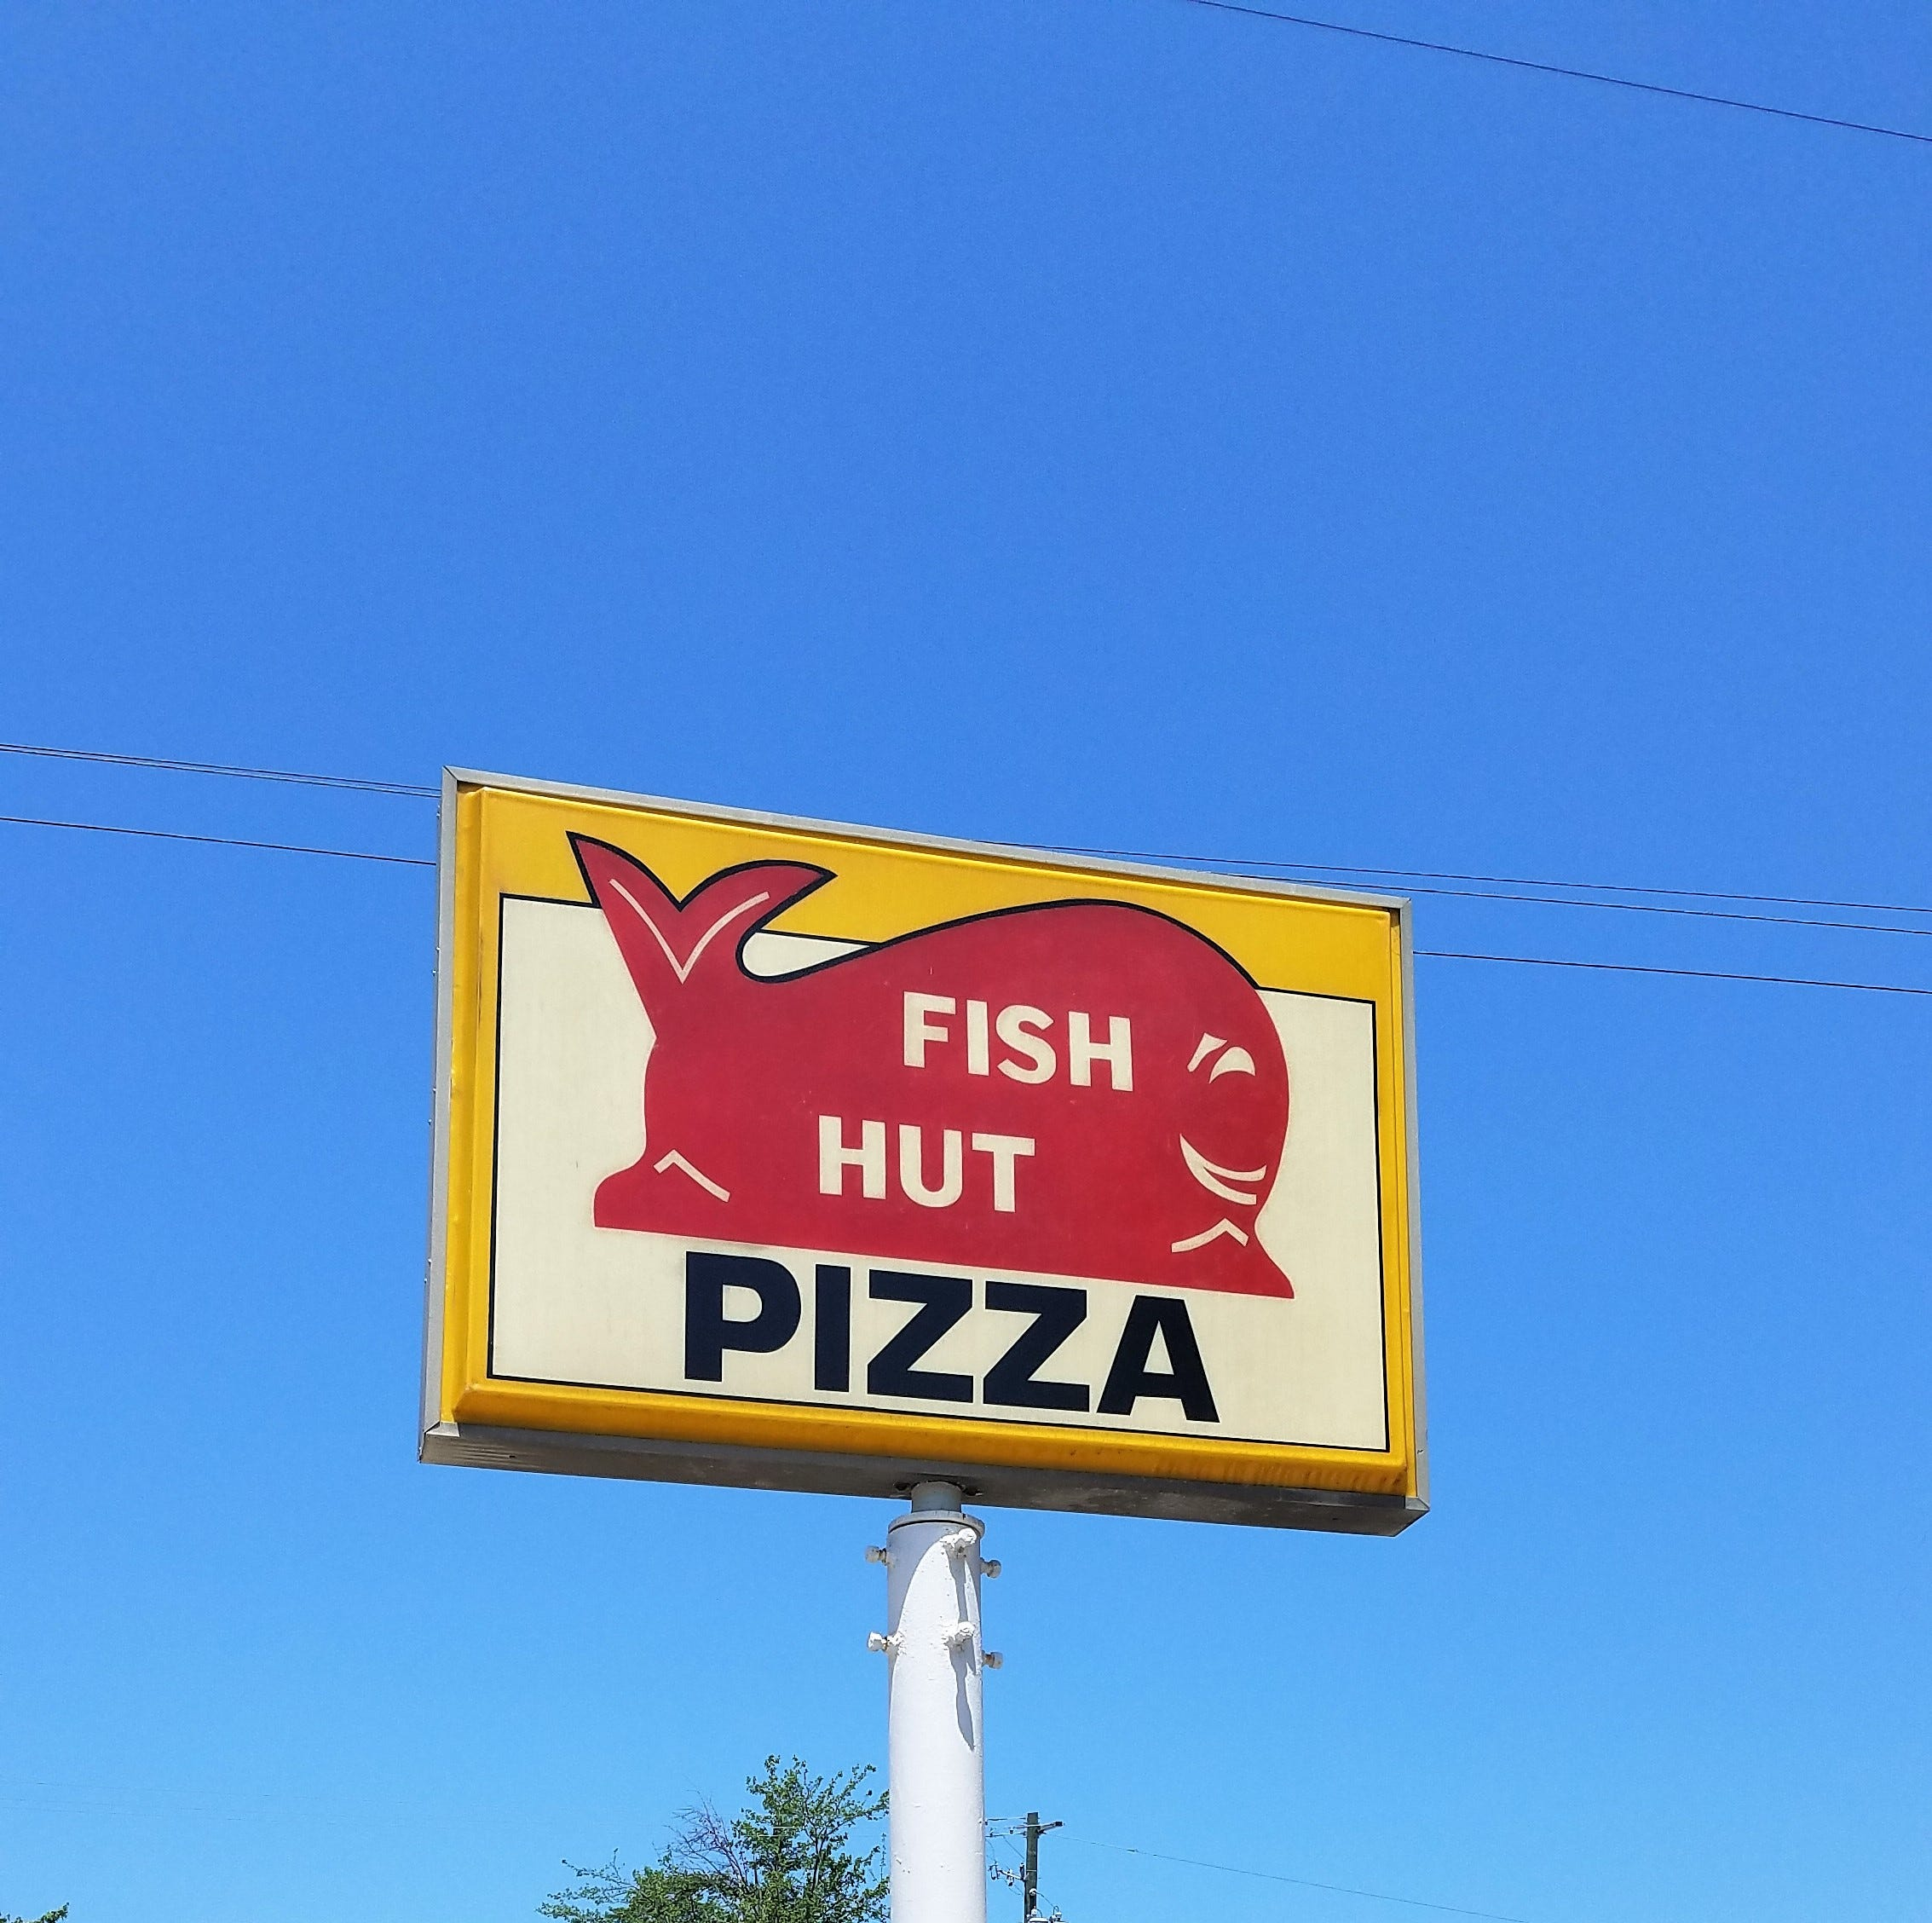 Petersburg's Fish Hut a worthy destination for classic fish sandwich